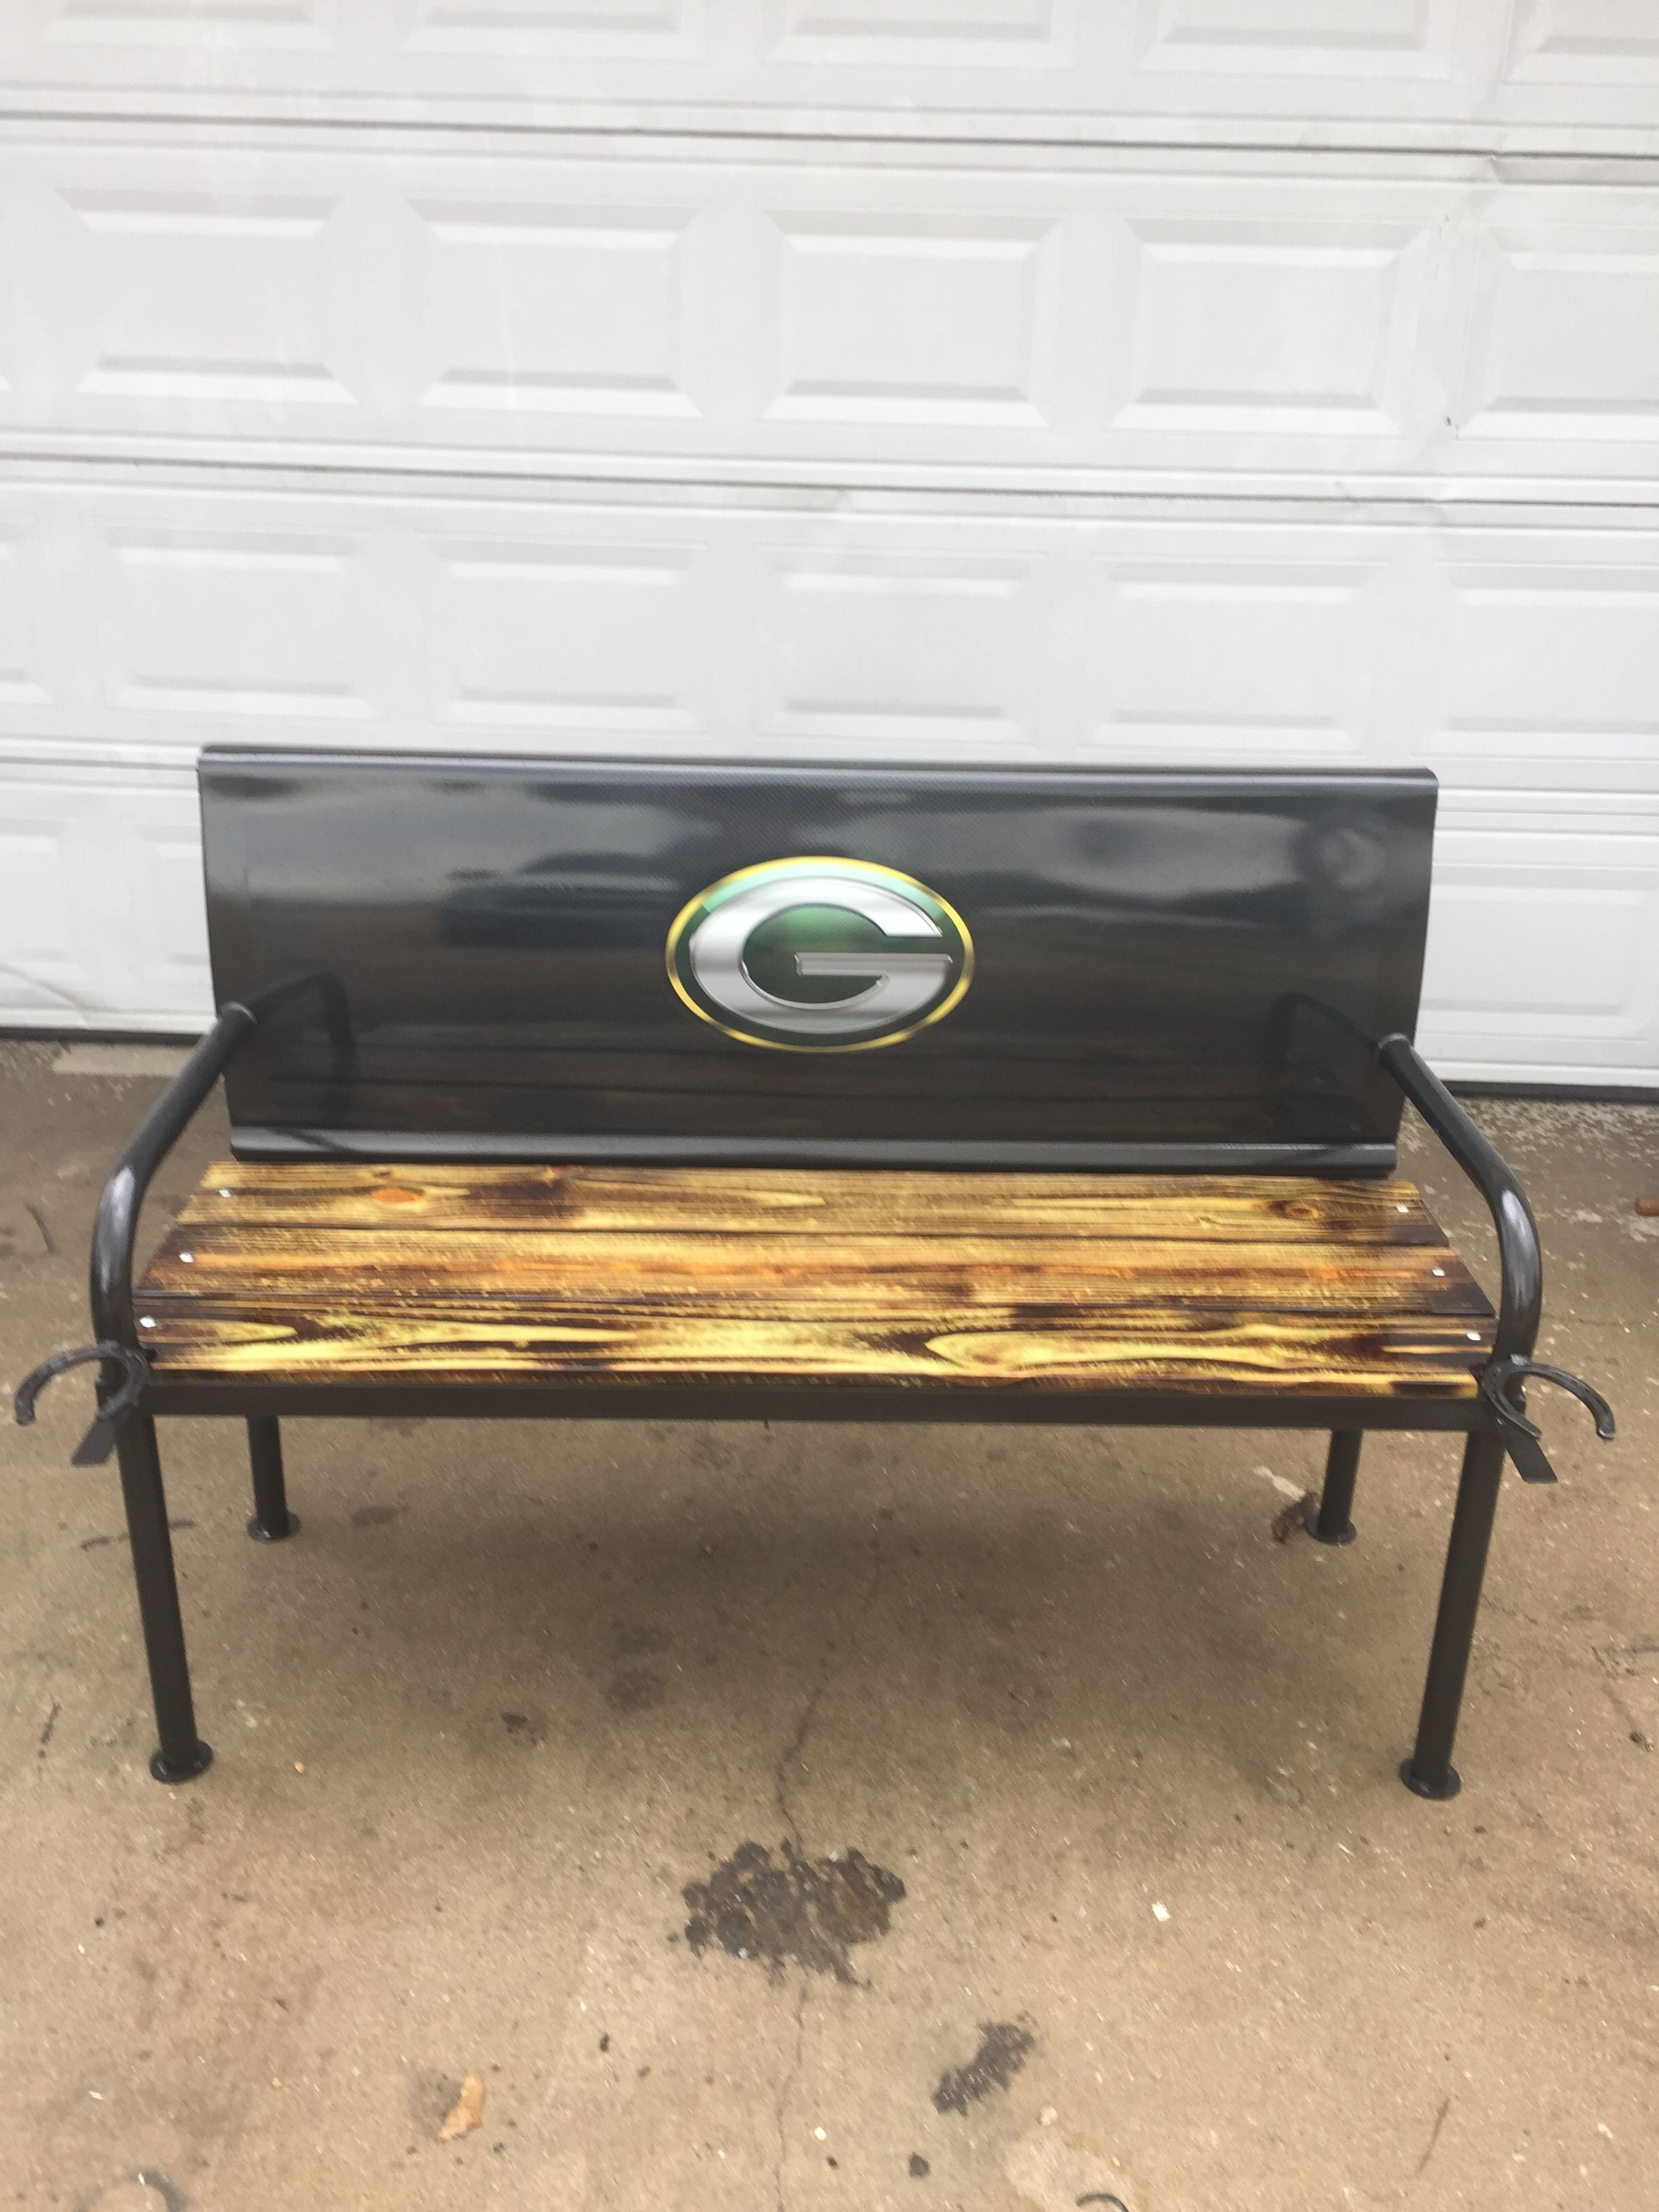 Green Bay Packer Tailgate Bench Green Bay Packers Crafts Tailgate Bench Coffee Table